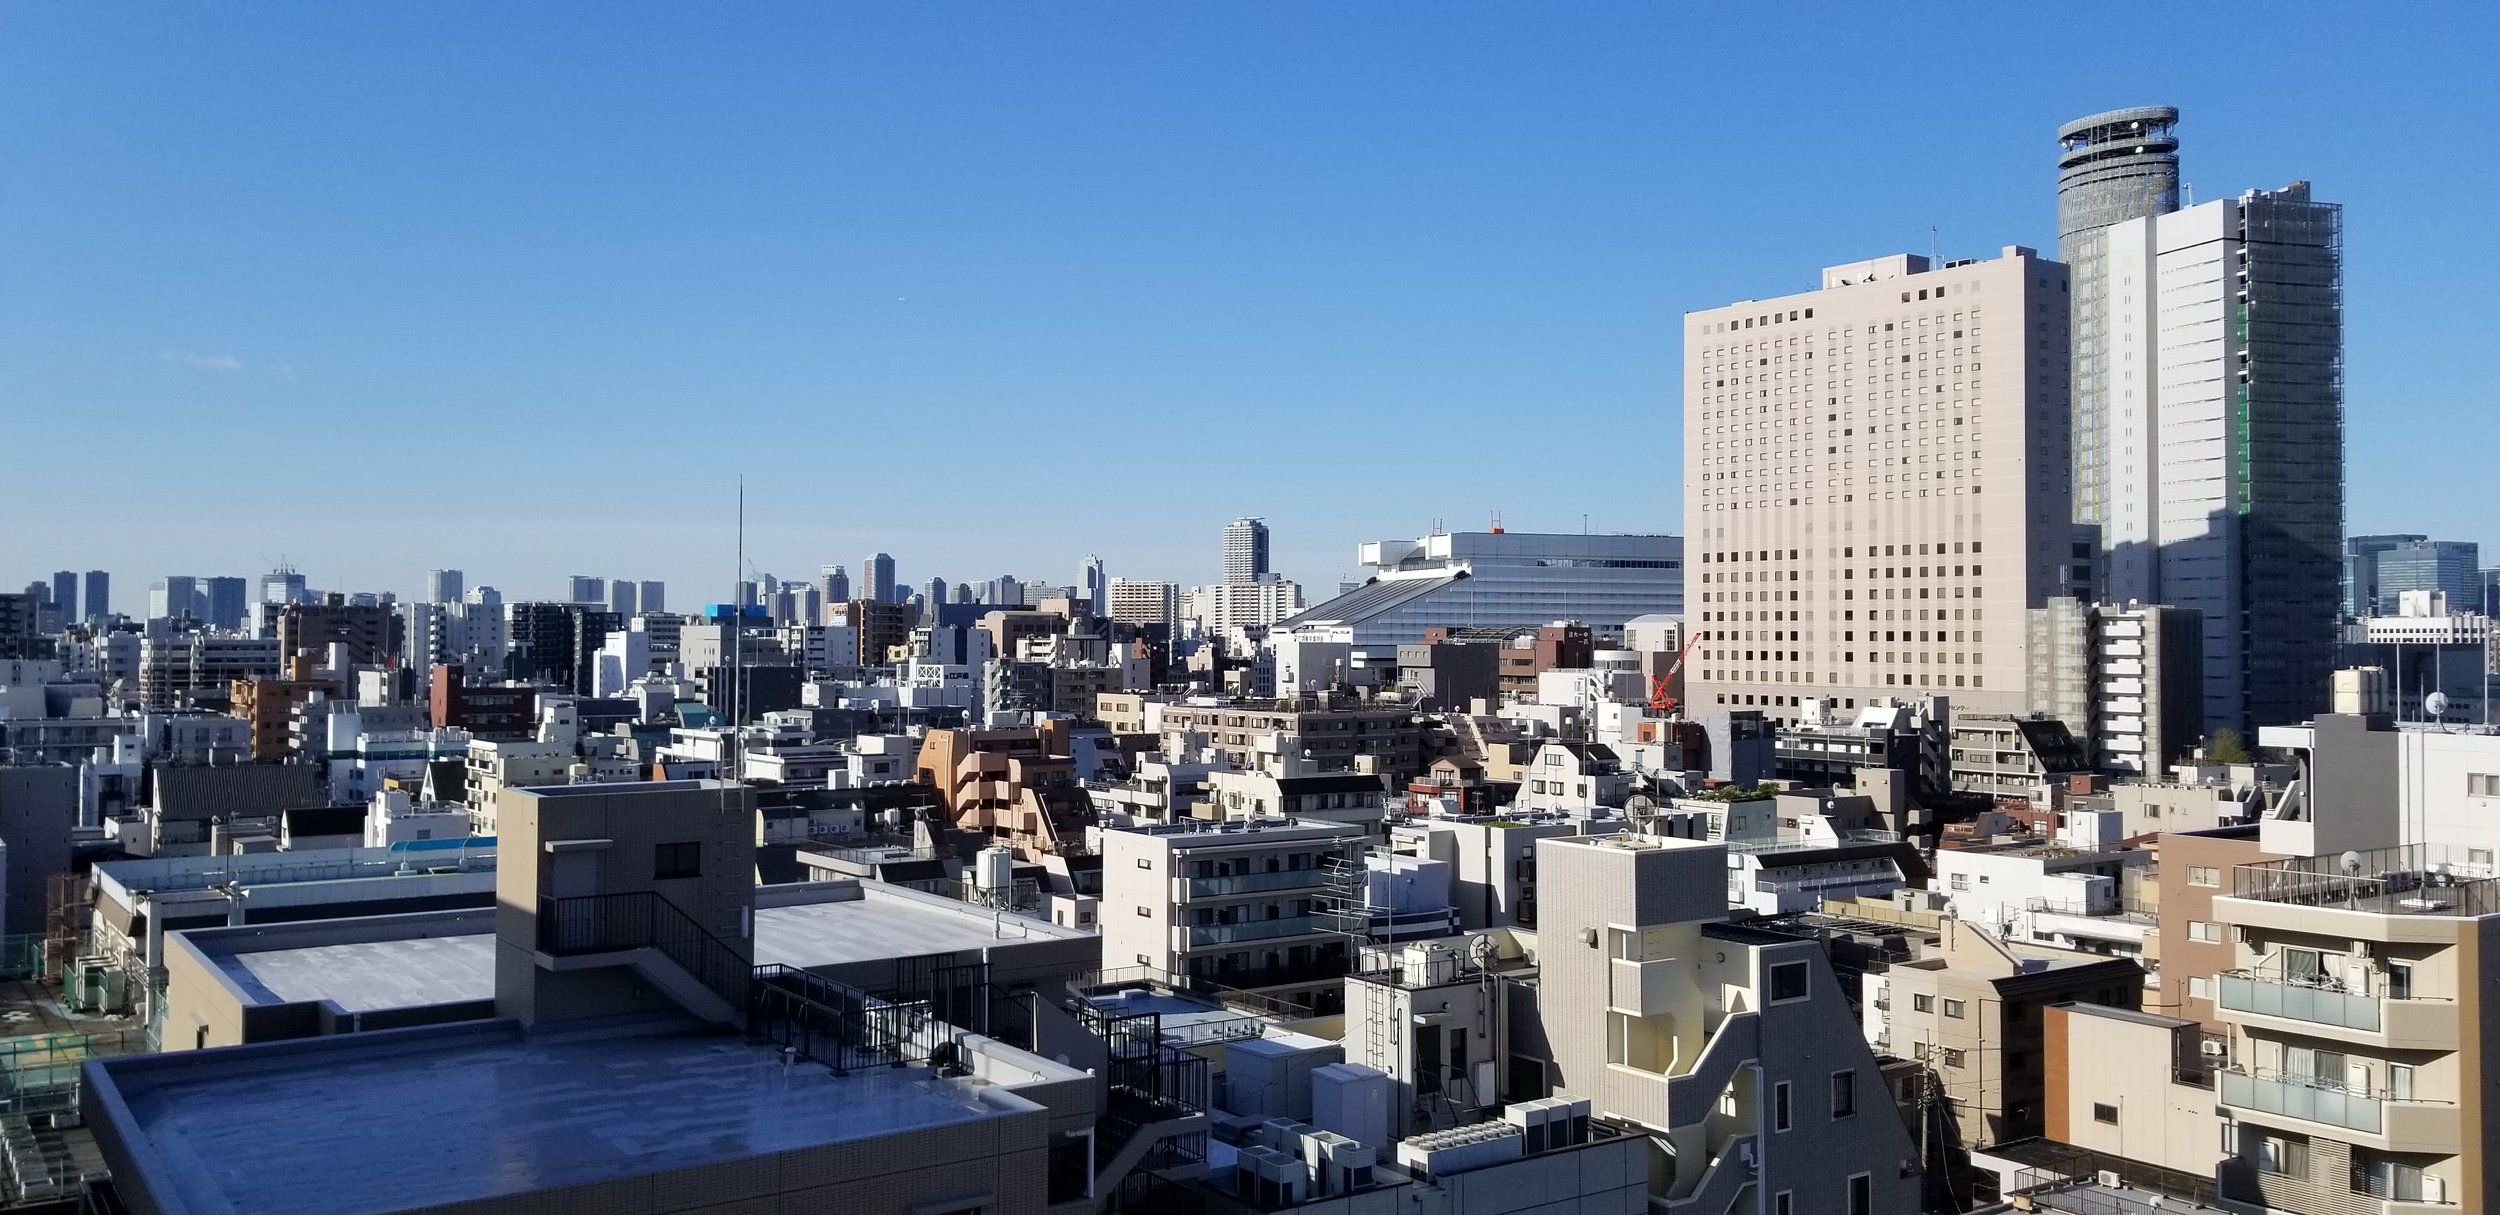 One of the views from our Tokyo apartment. That angled roof center-right is the sumo stadium. We did see sumo wrestlers walking around nearby.